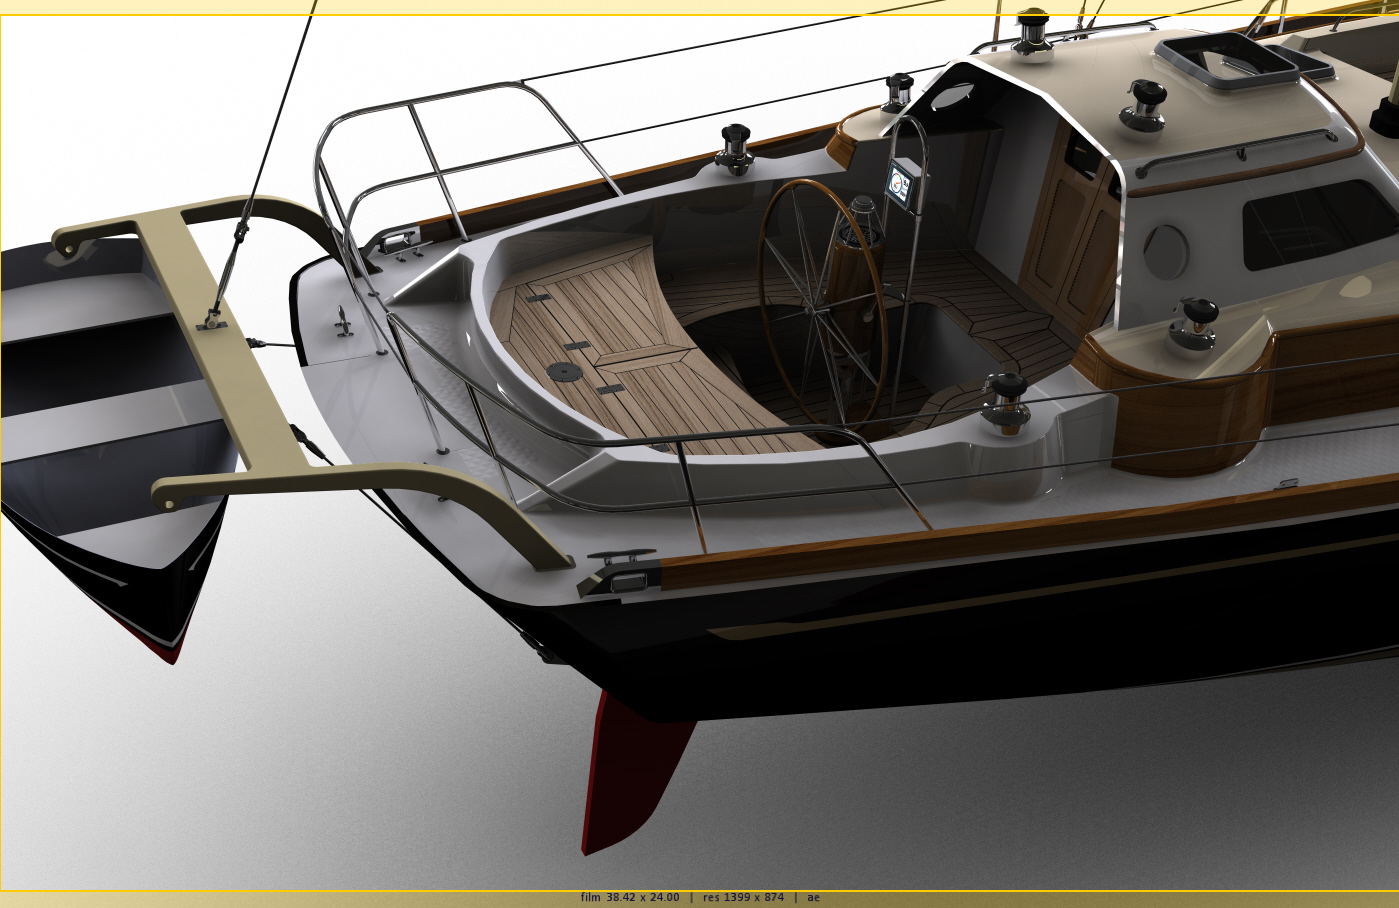 http://perryboat.sail2live.com/yacht_design_according_to_perry/cockpit11.JPG